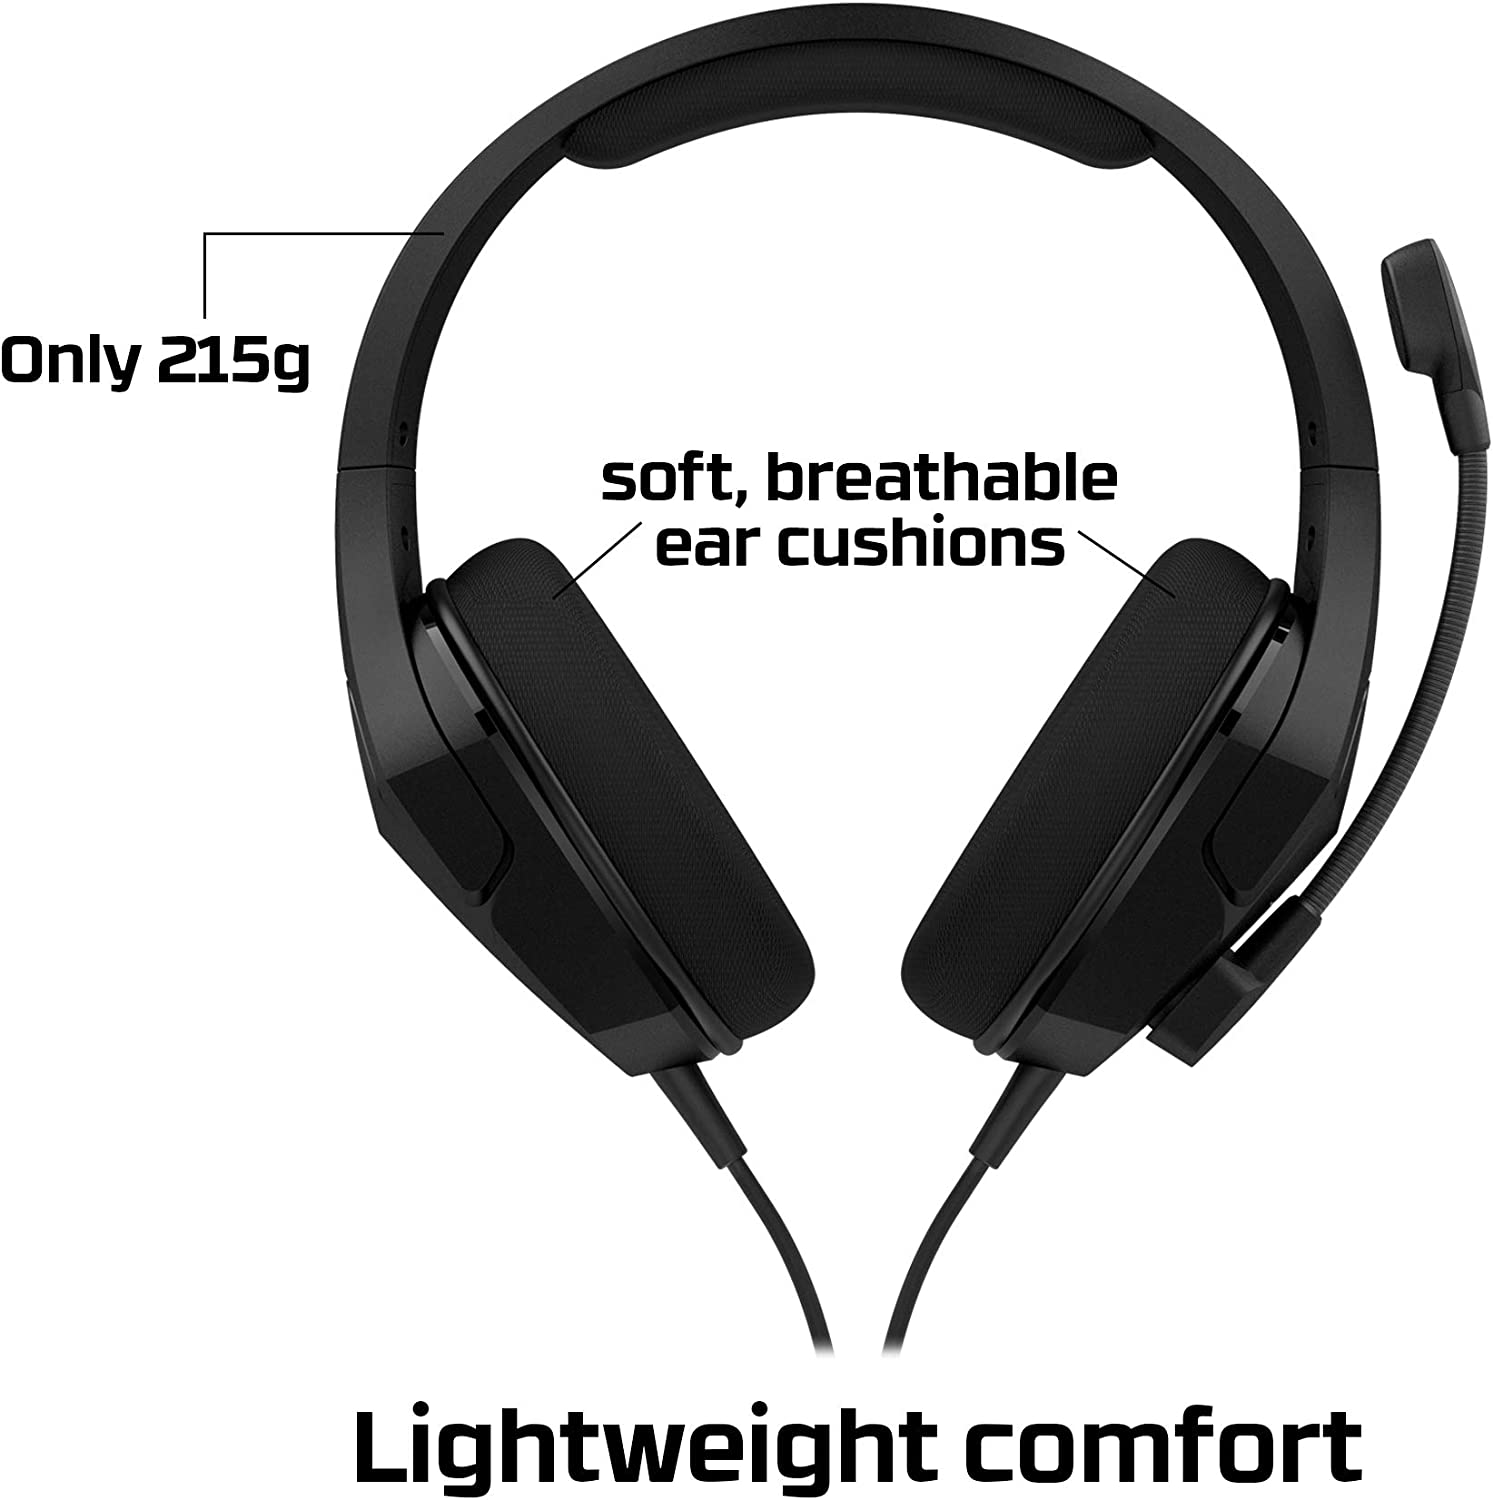 Noise Cancelling Microphone HyperX Cloud Stinger Wireless Gaming Headset with Long Lasting Battery Upto 17 Hours of Use Comfortable Memory Foam and Designed for PC Immersive In-Game Audio